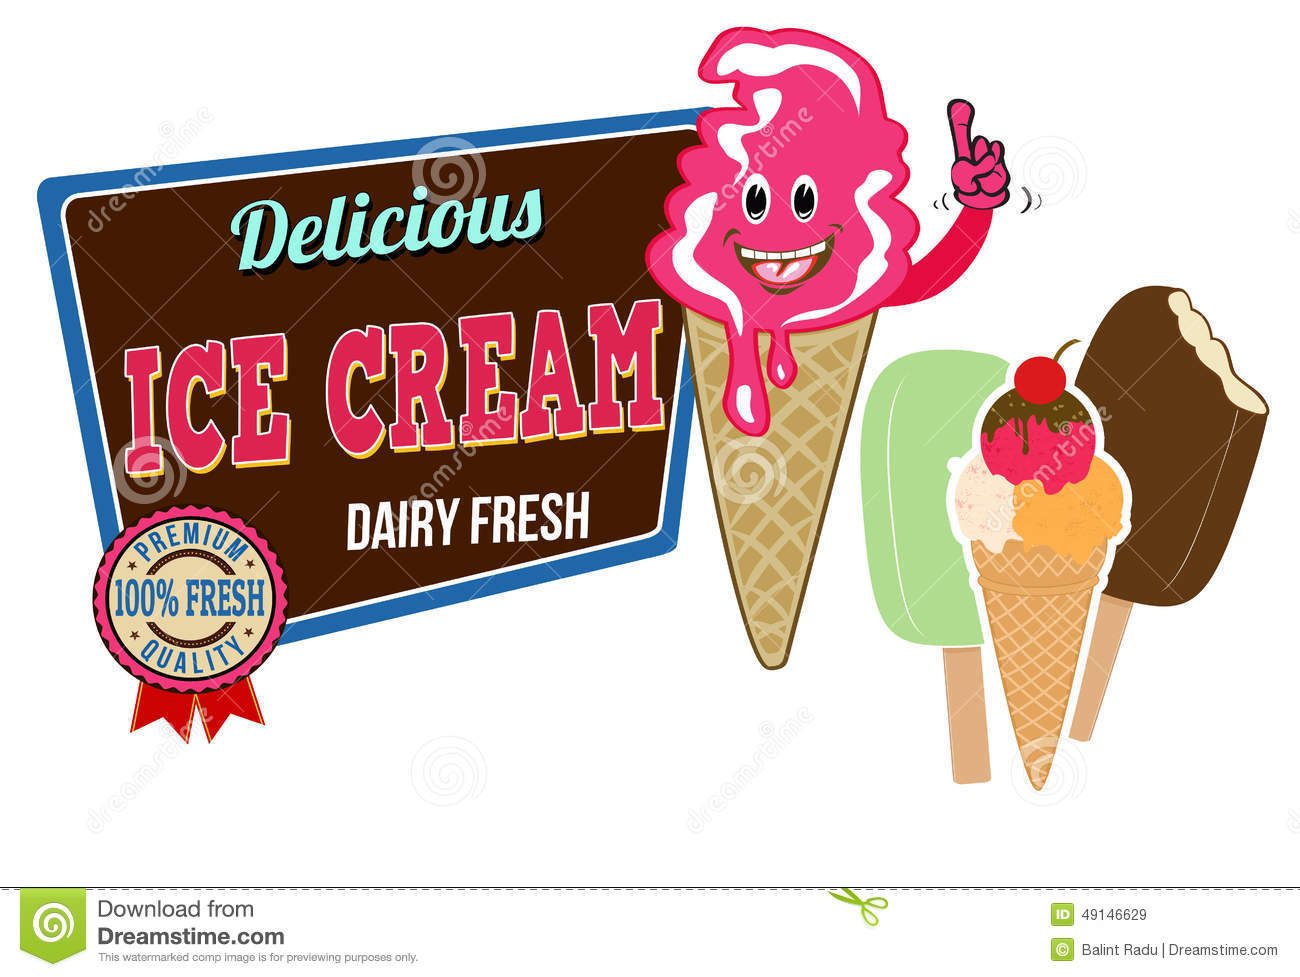 Ice Cream icon on white background, vector illustration.